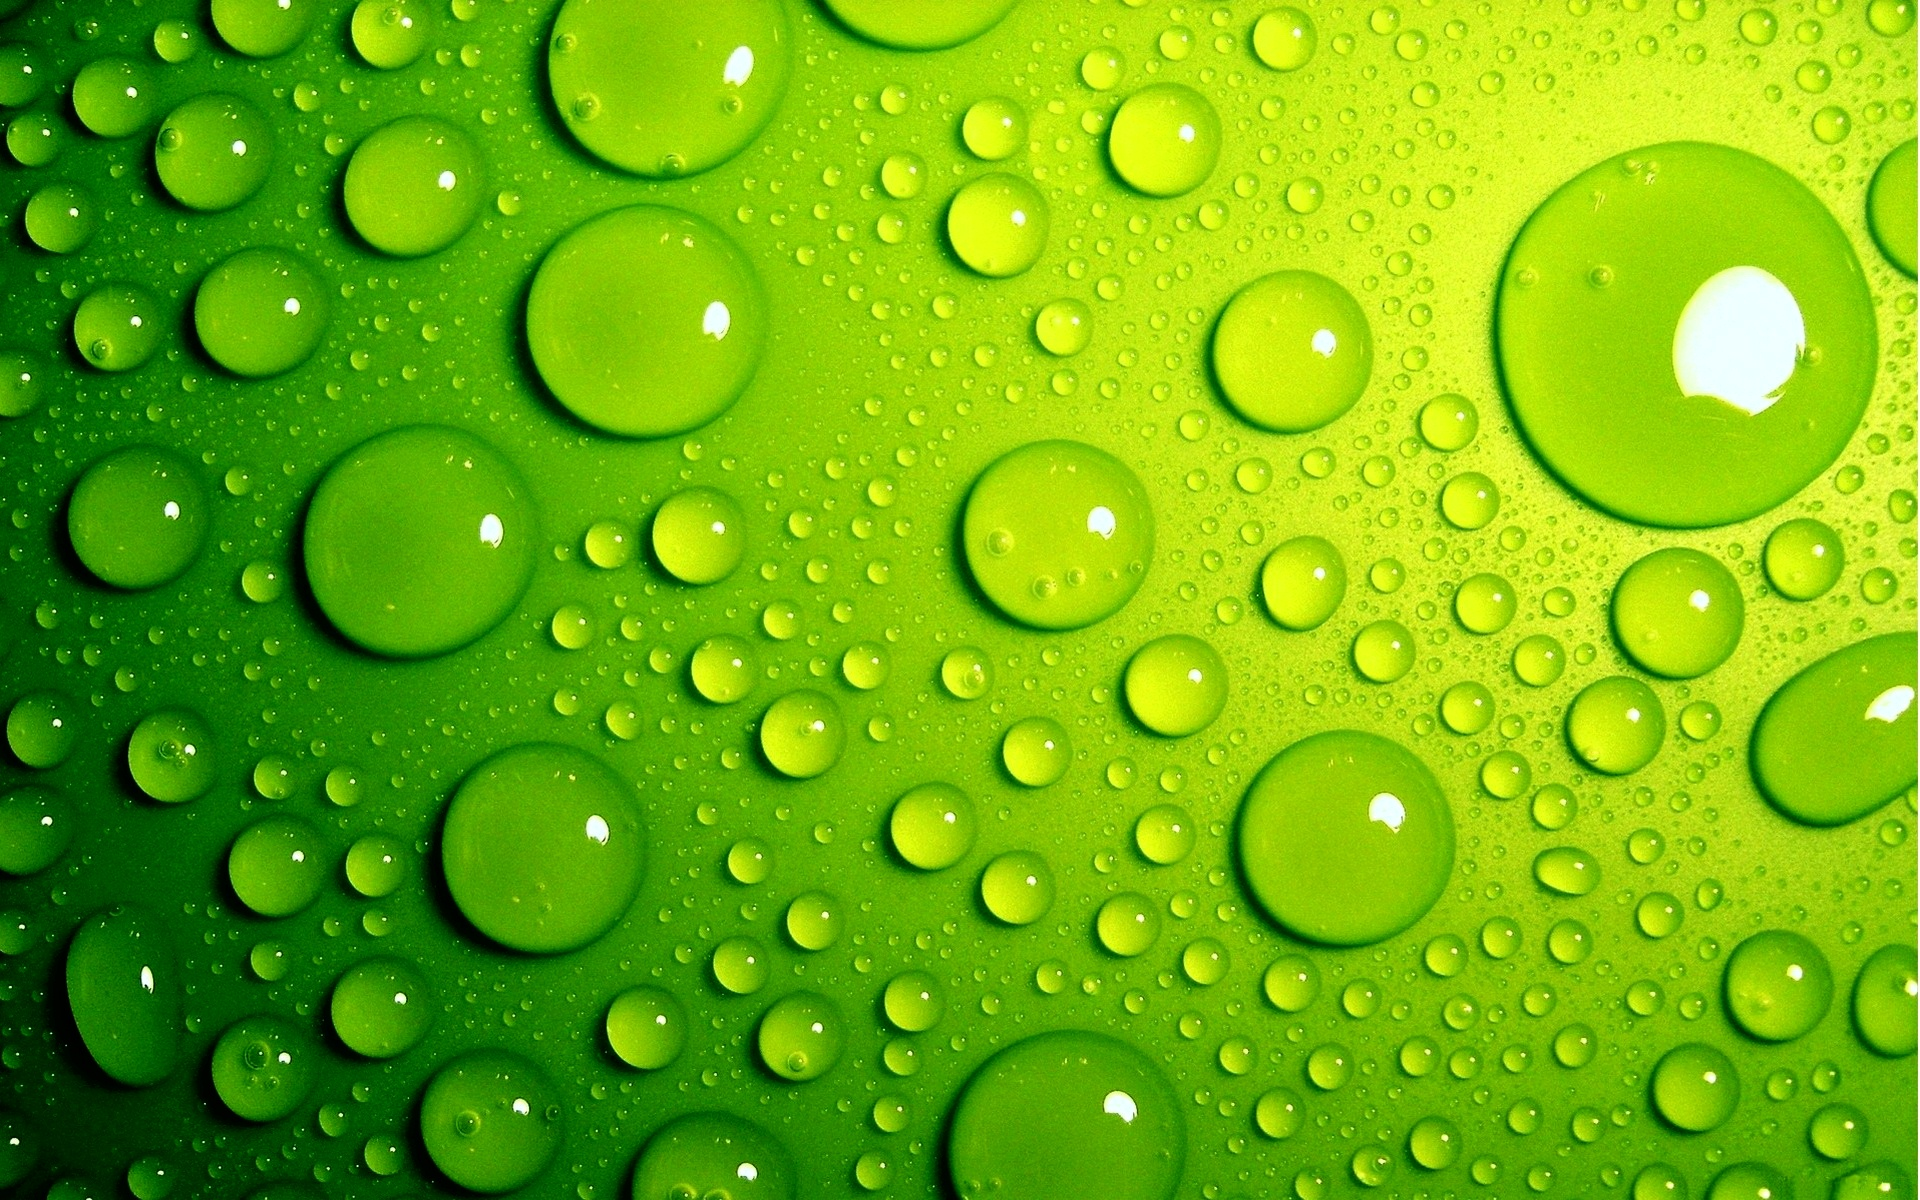 Green Bubbles Wallpapers HD Wallpapers 1920x1200